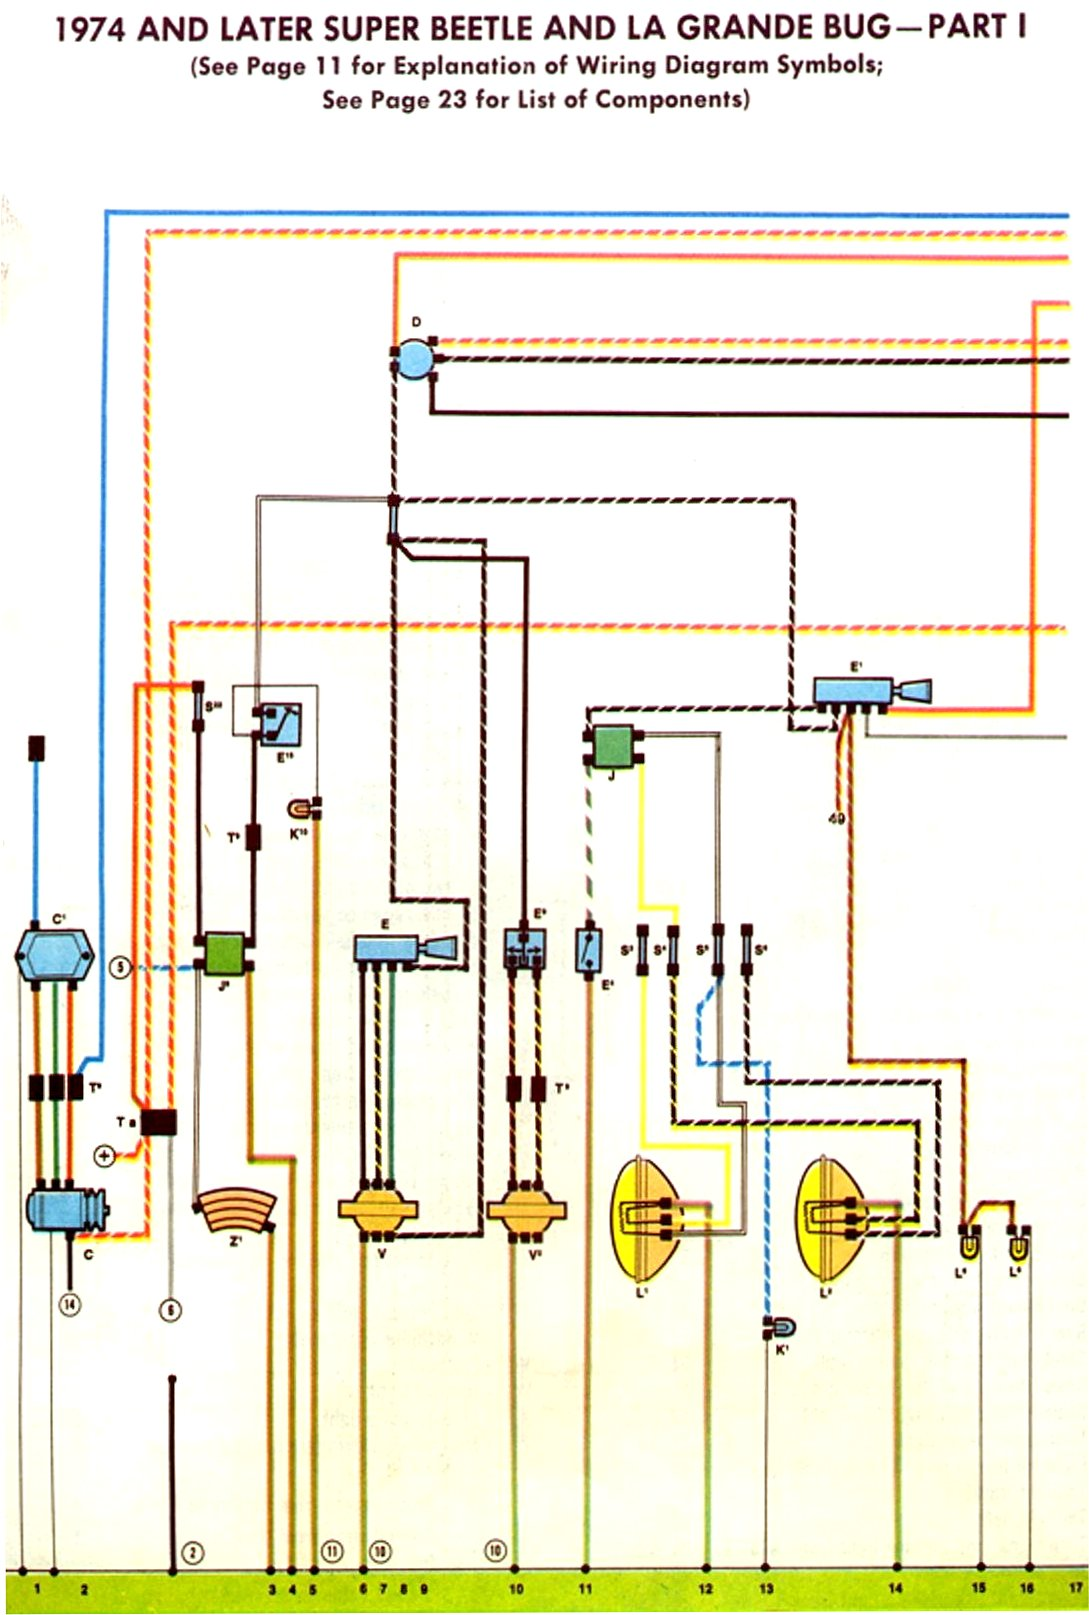 hight resolution of 1974 75 super beetle wiring diagram thegoldenbug com rh thegoldenbug com 74 super beetle alternator wiring connection 77 beetle fuse box wiring diagram